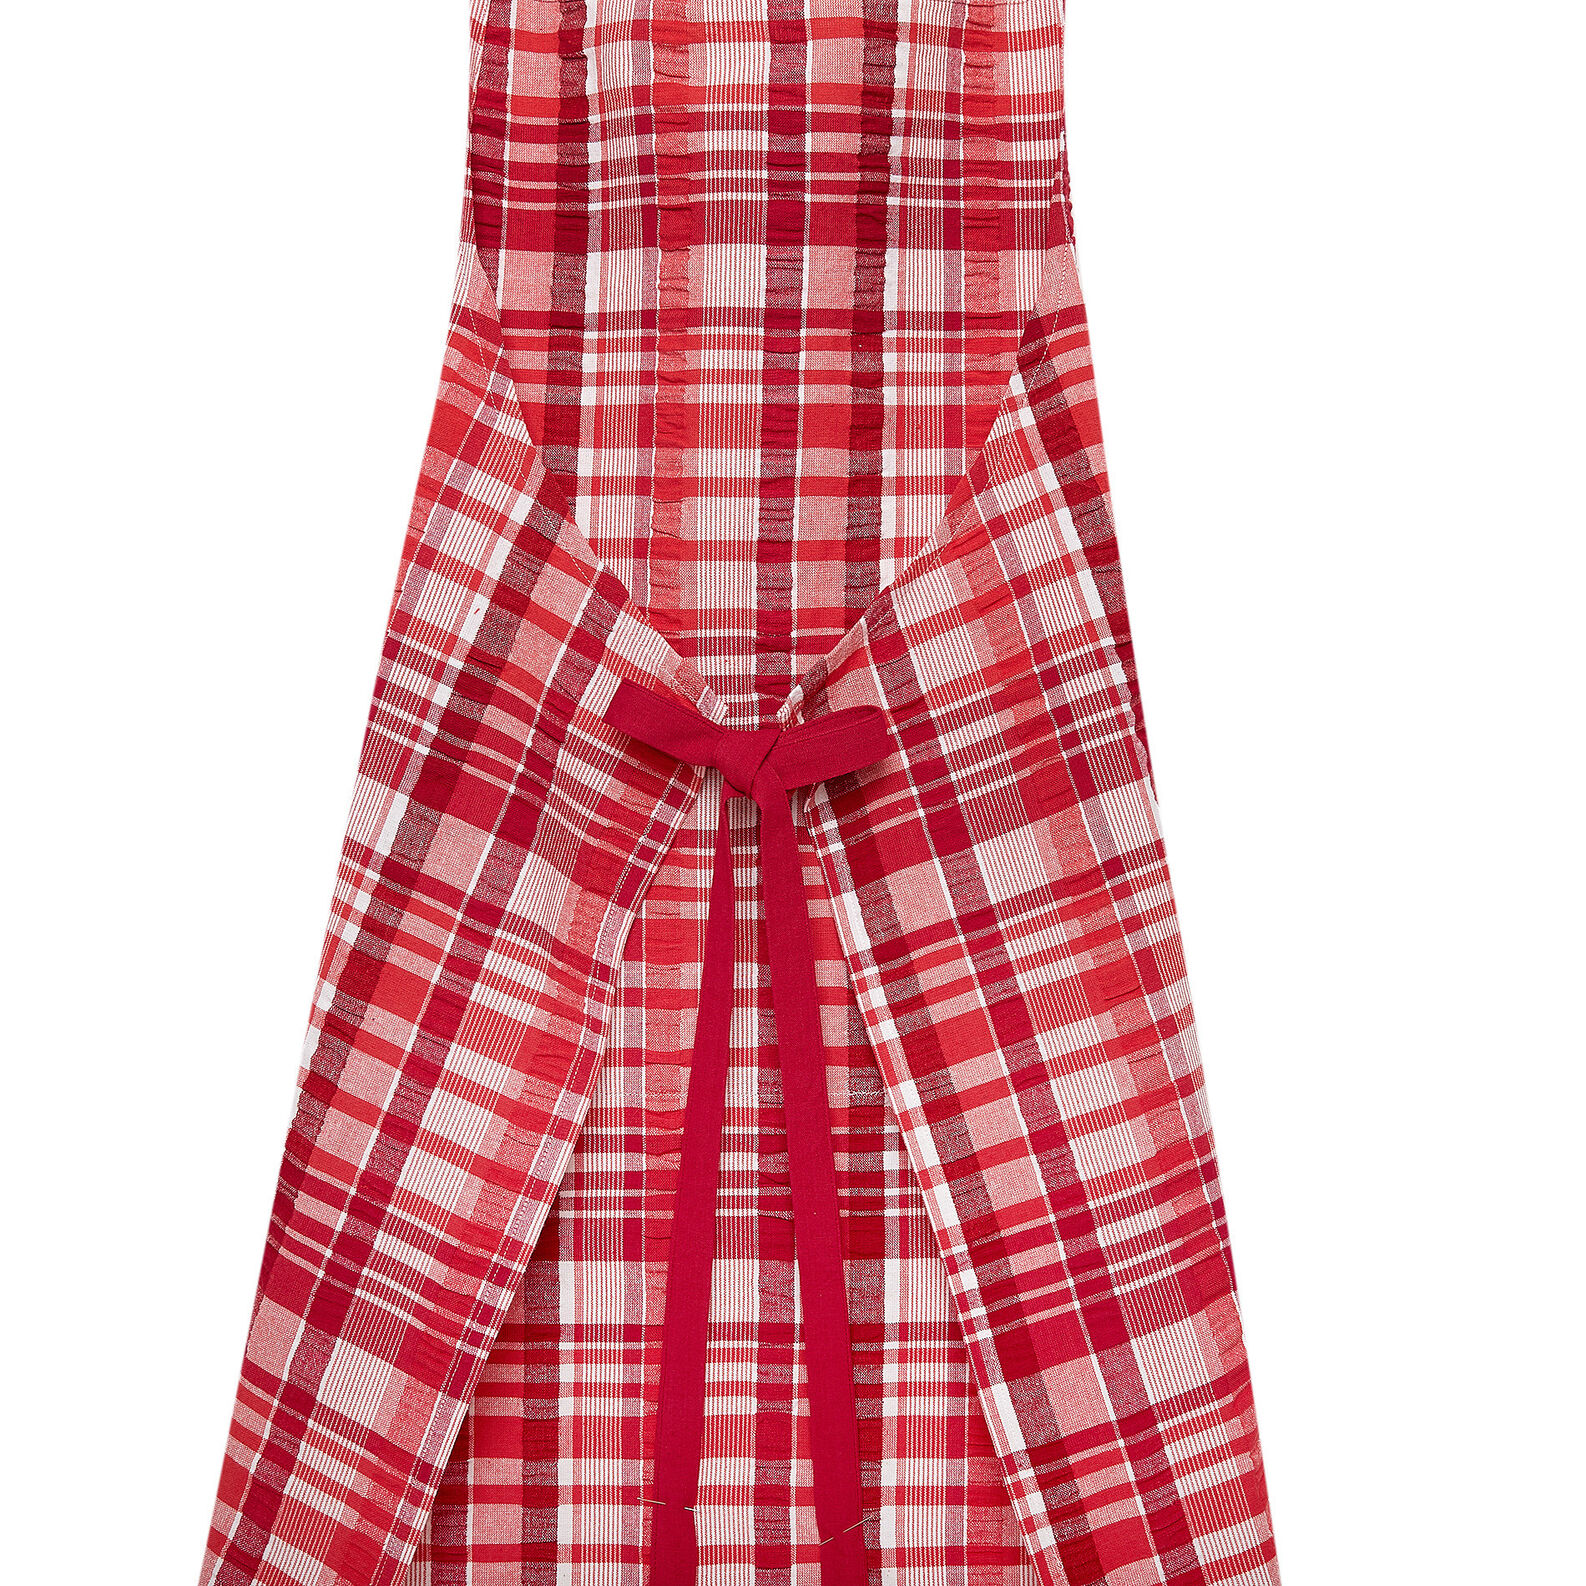 Apron in 100% cotton with check pattern